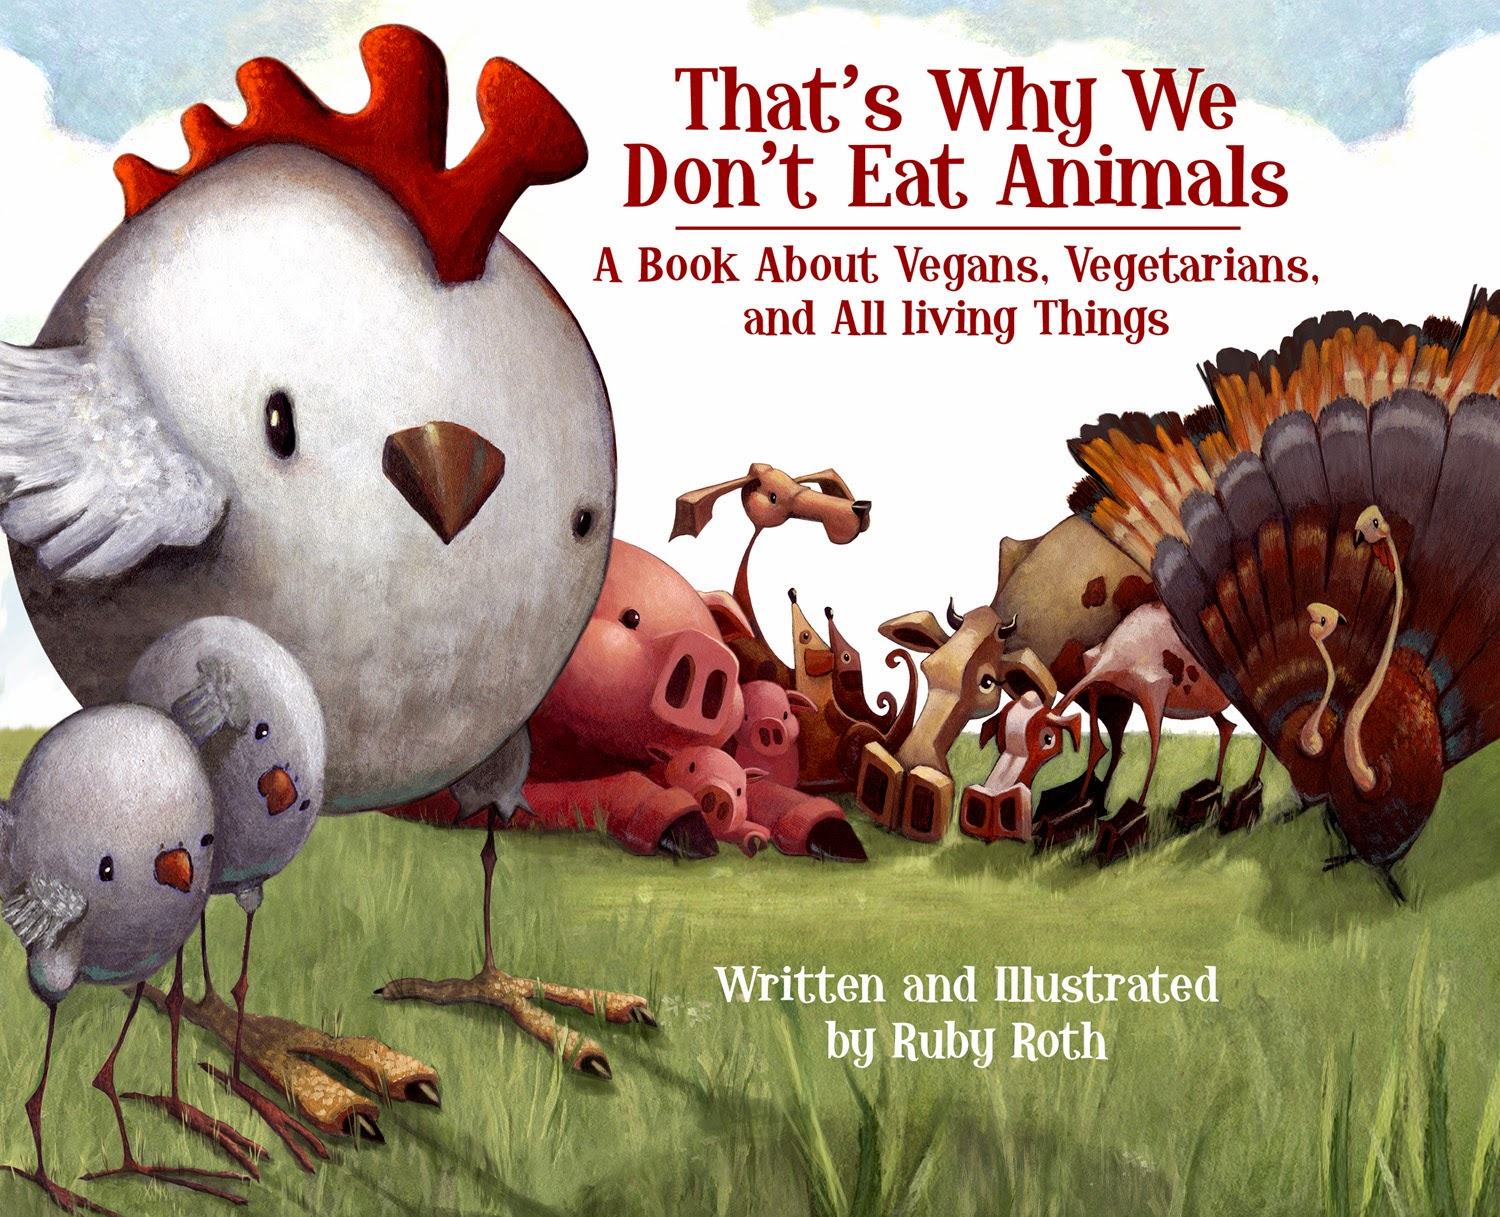 vegan+book+for+kids, introduction+to+veganism, Thats+why+we+dont+eat+animals, Ruby+Roth